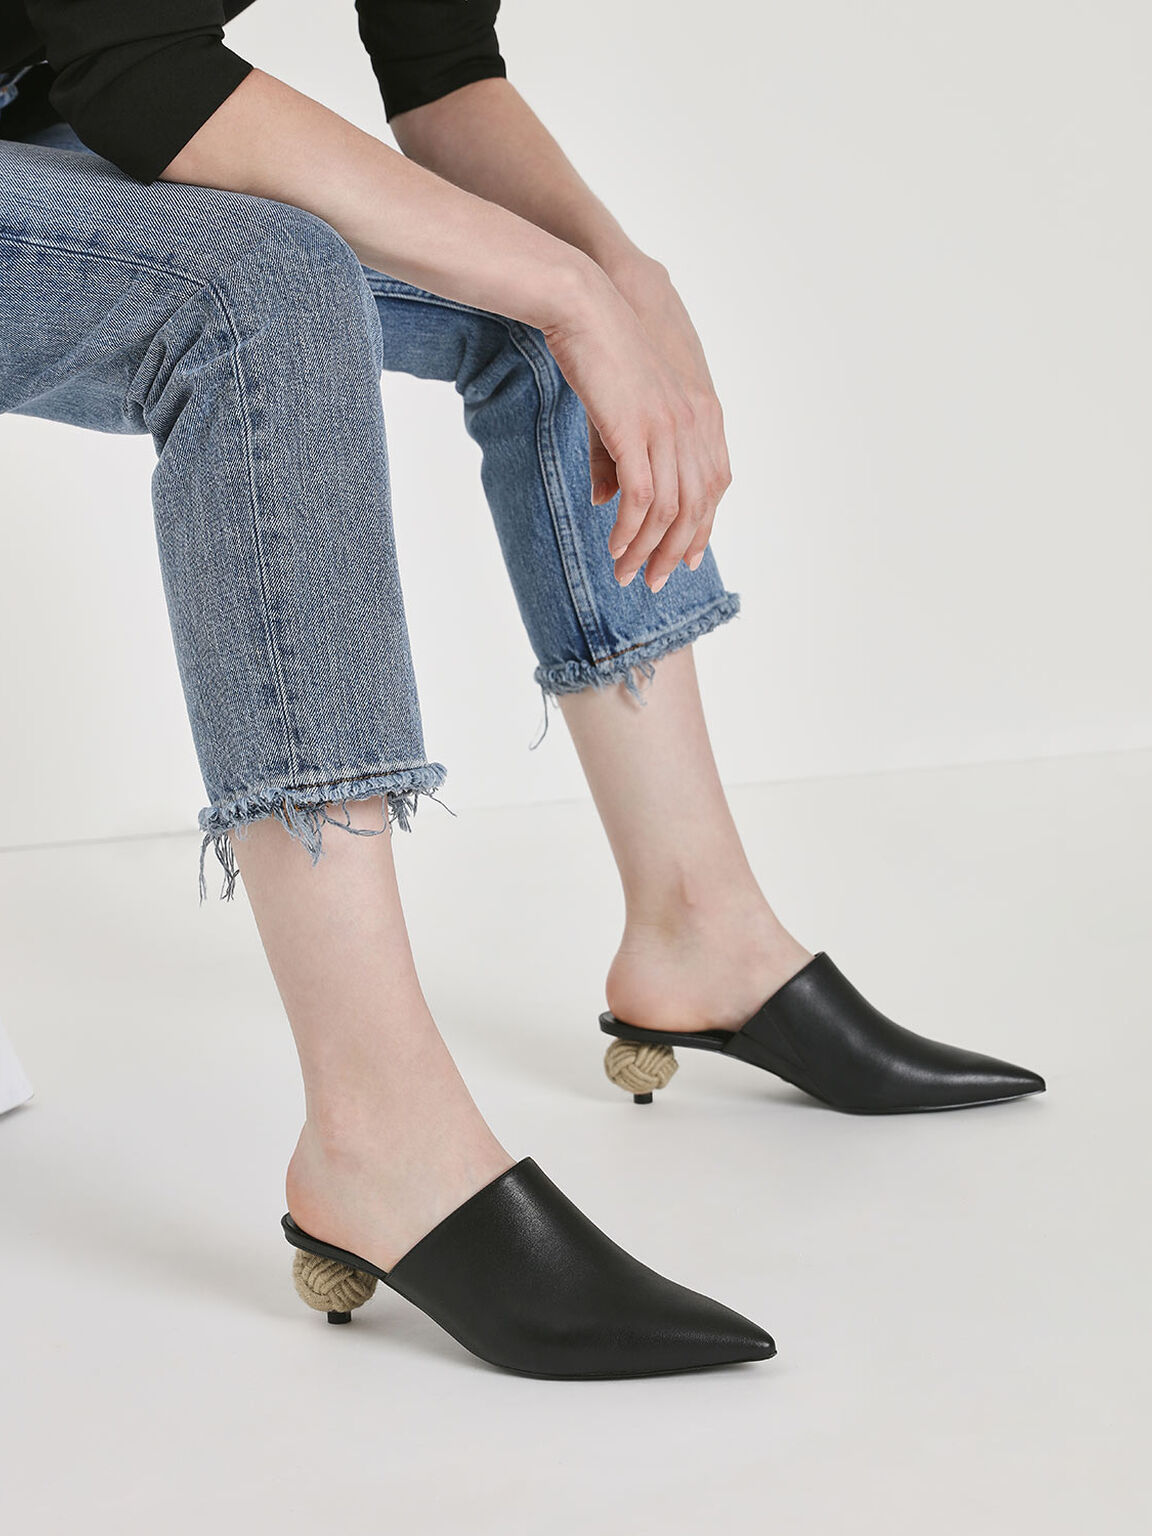 Spherical Heel Leather Mules, Black, hi-res